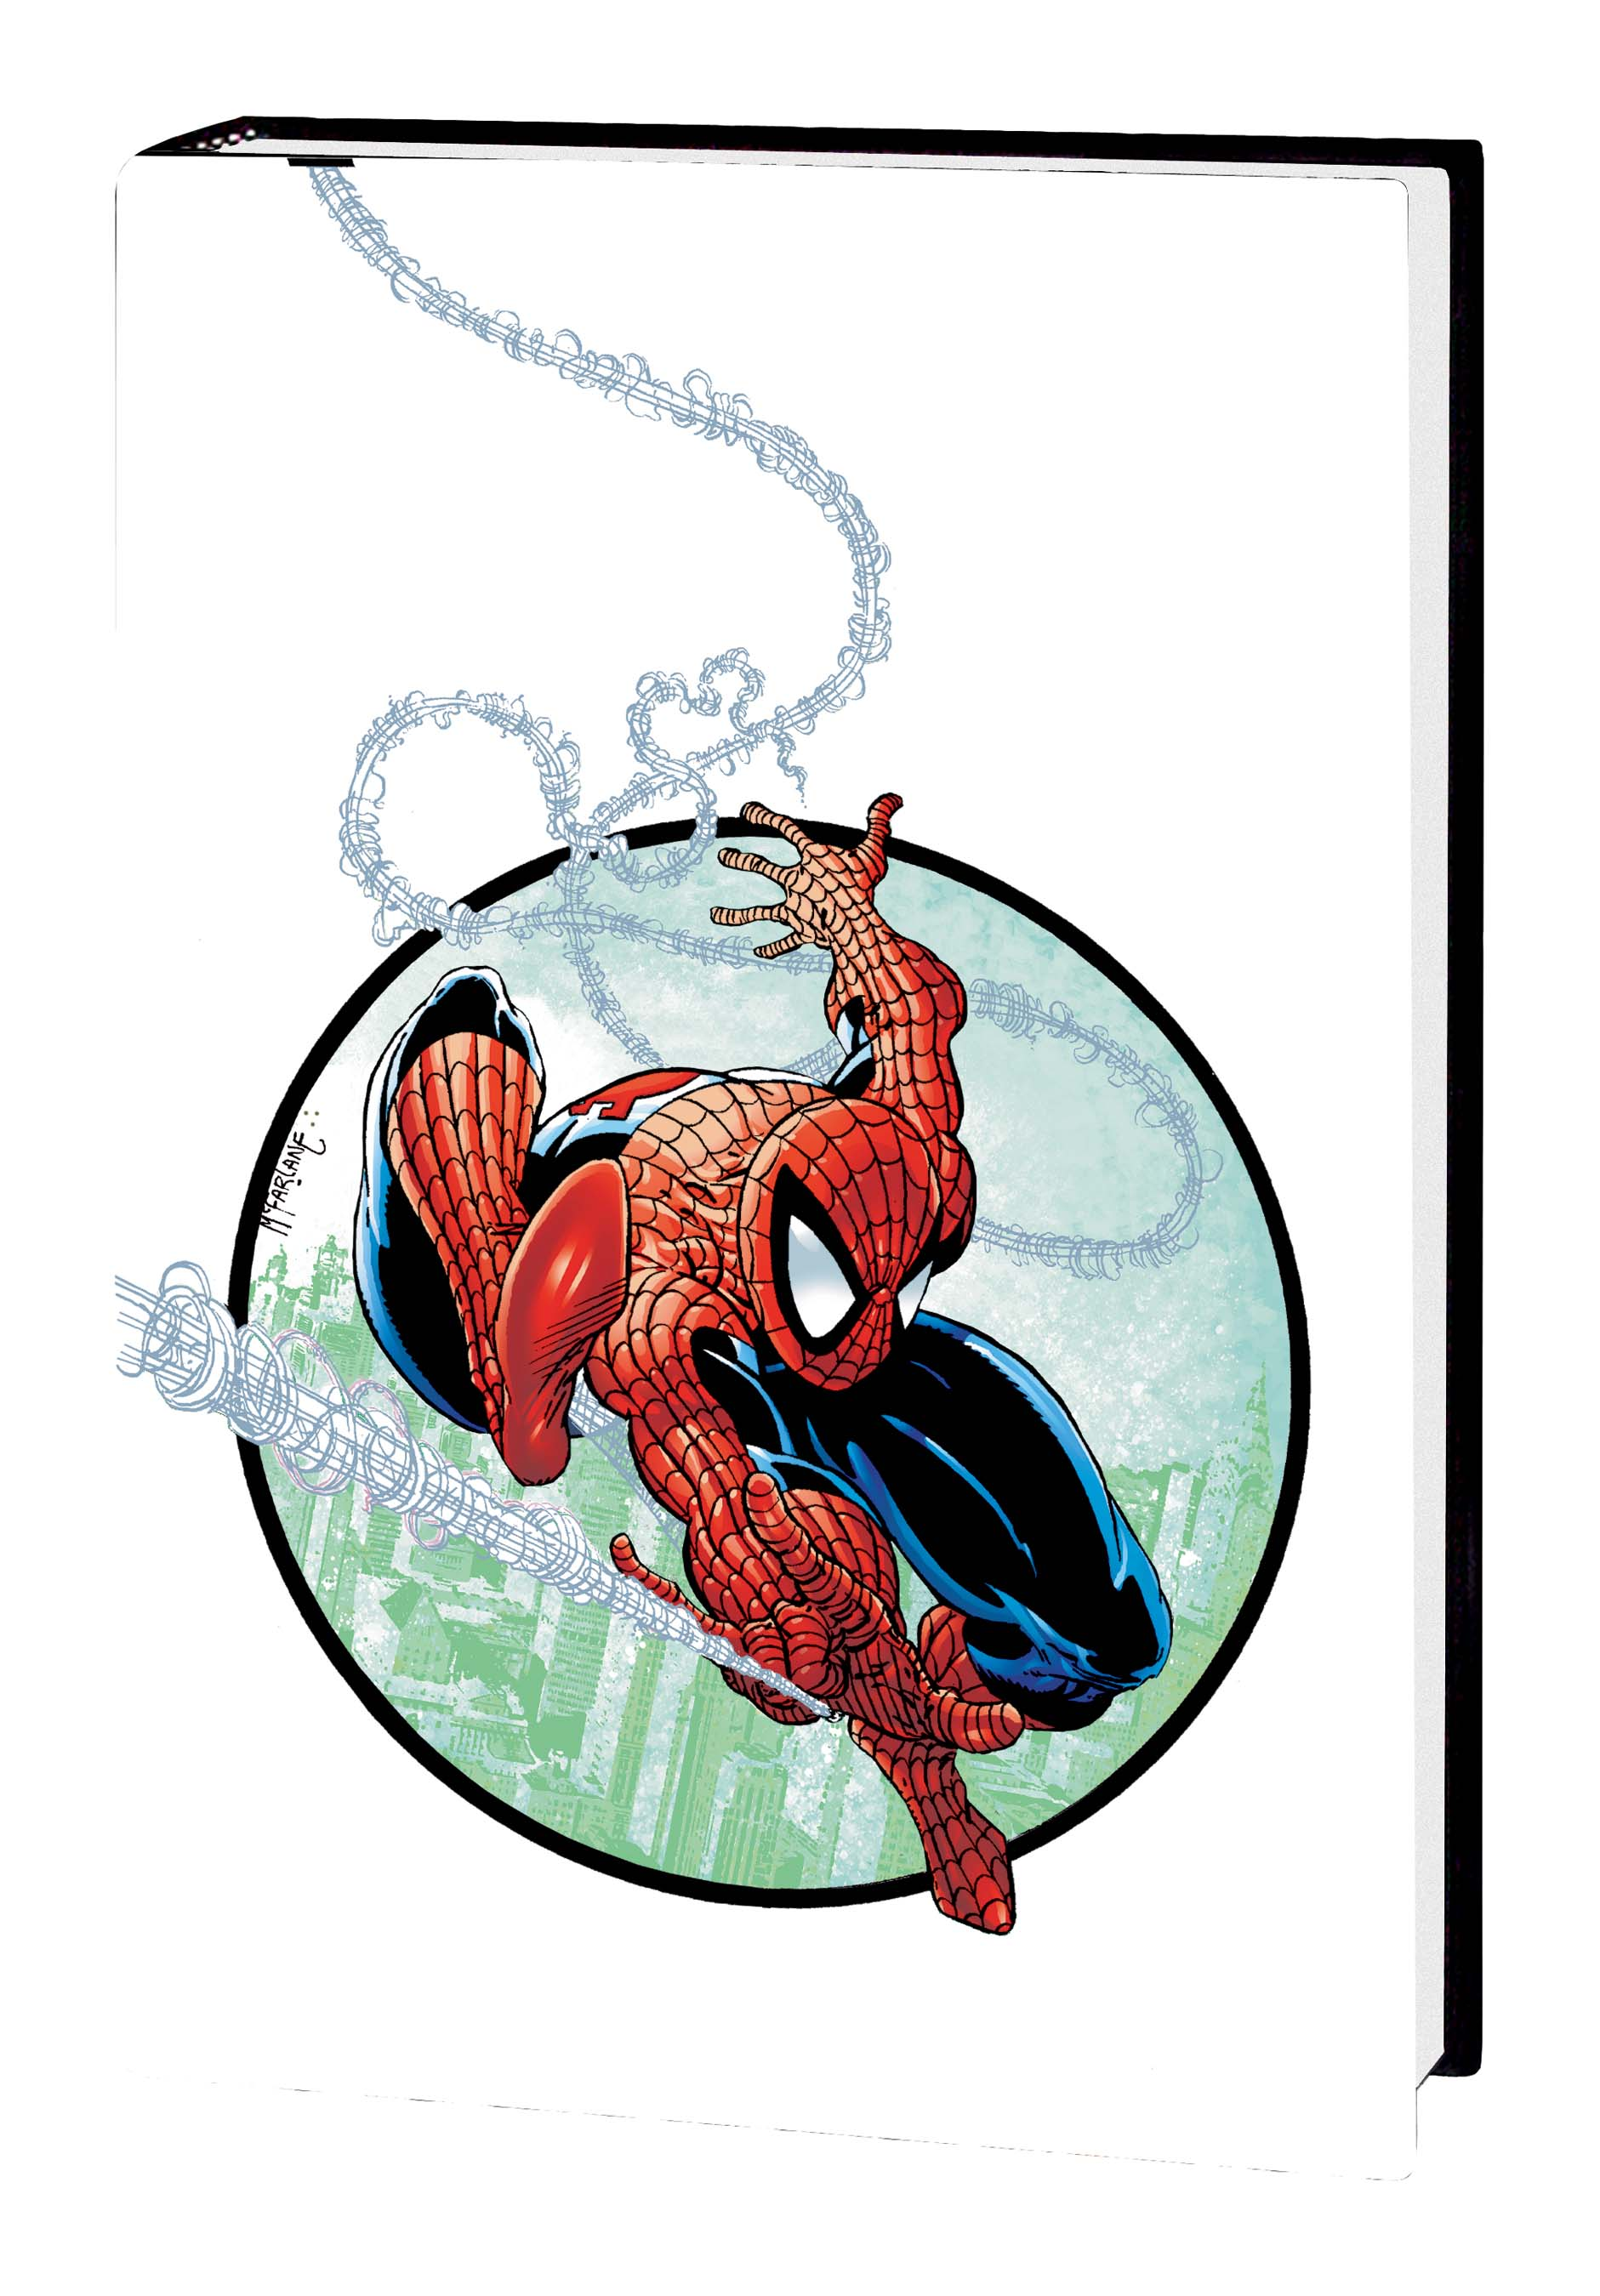 AMAZING SPIDER-MAN BY DAVID MICHELINIE & TODD MCFARLANE OMNIBUS HC (Hardcover)